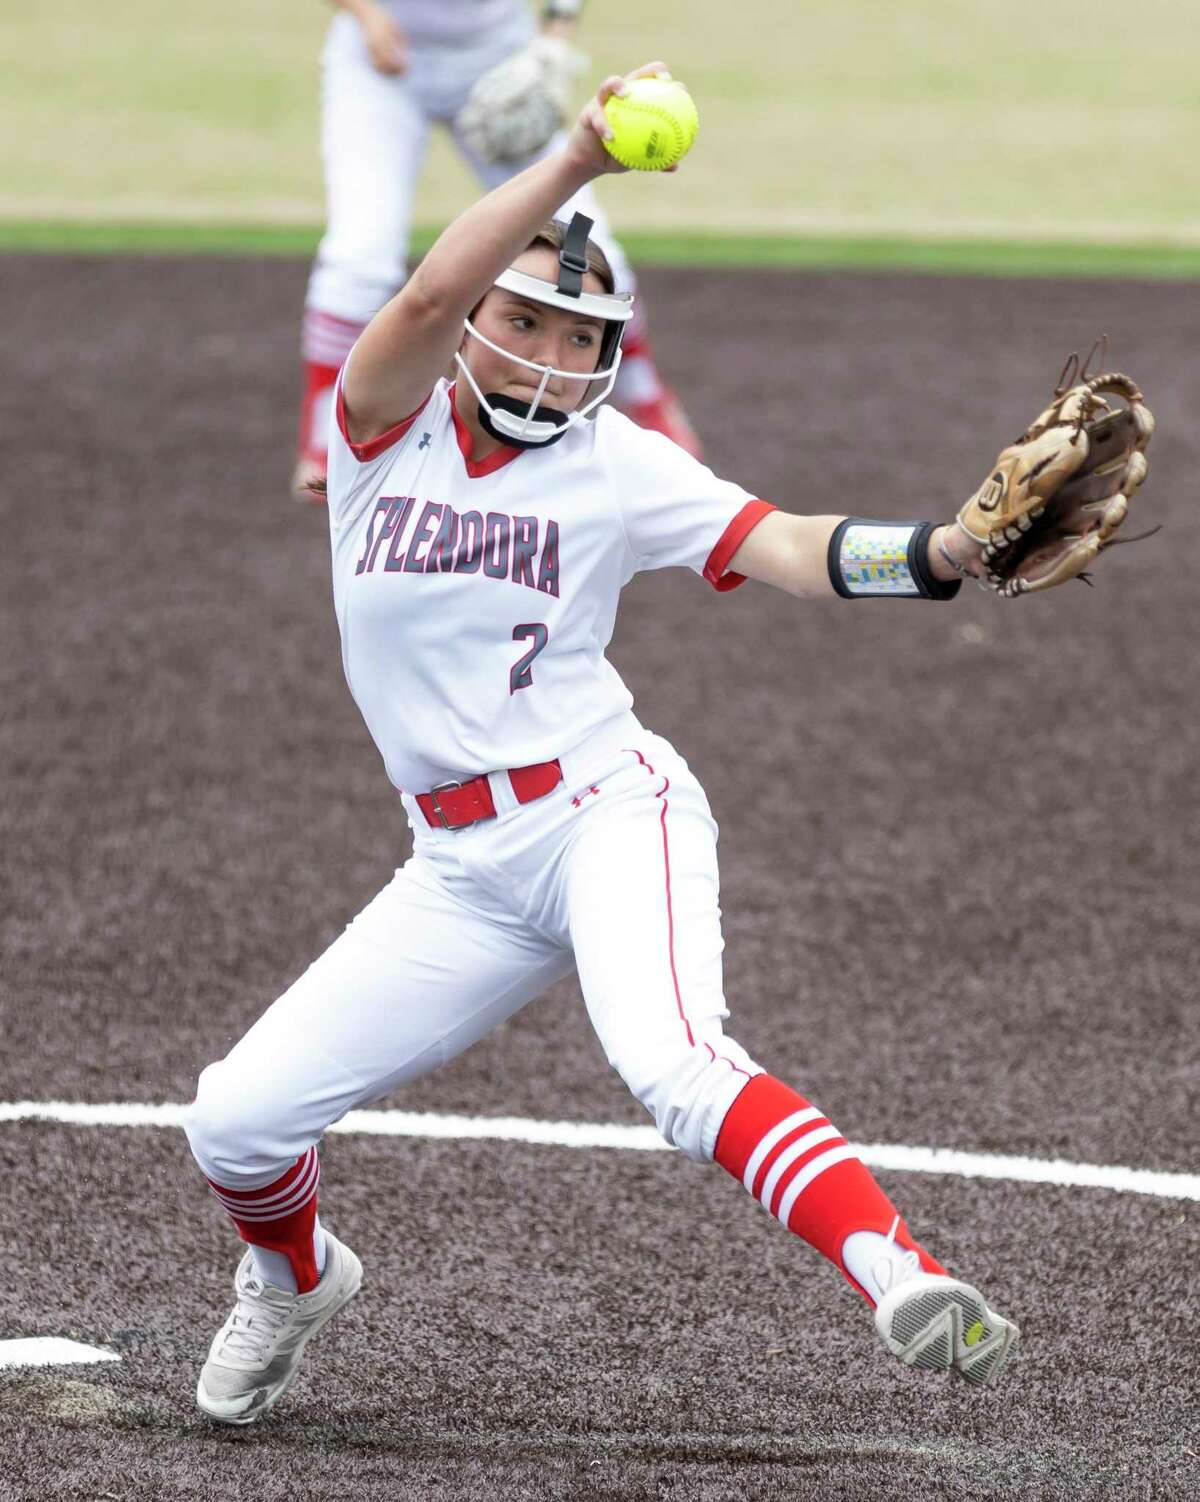 Splendora pitcher Brooke Martin (2) throws during the fourth inning of a District 21-4A softball game against Huffman-Hargrave at Splendora High School, Tuesday, March 16, 2021, in Splendora